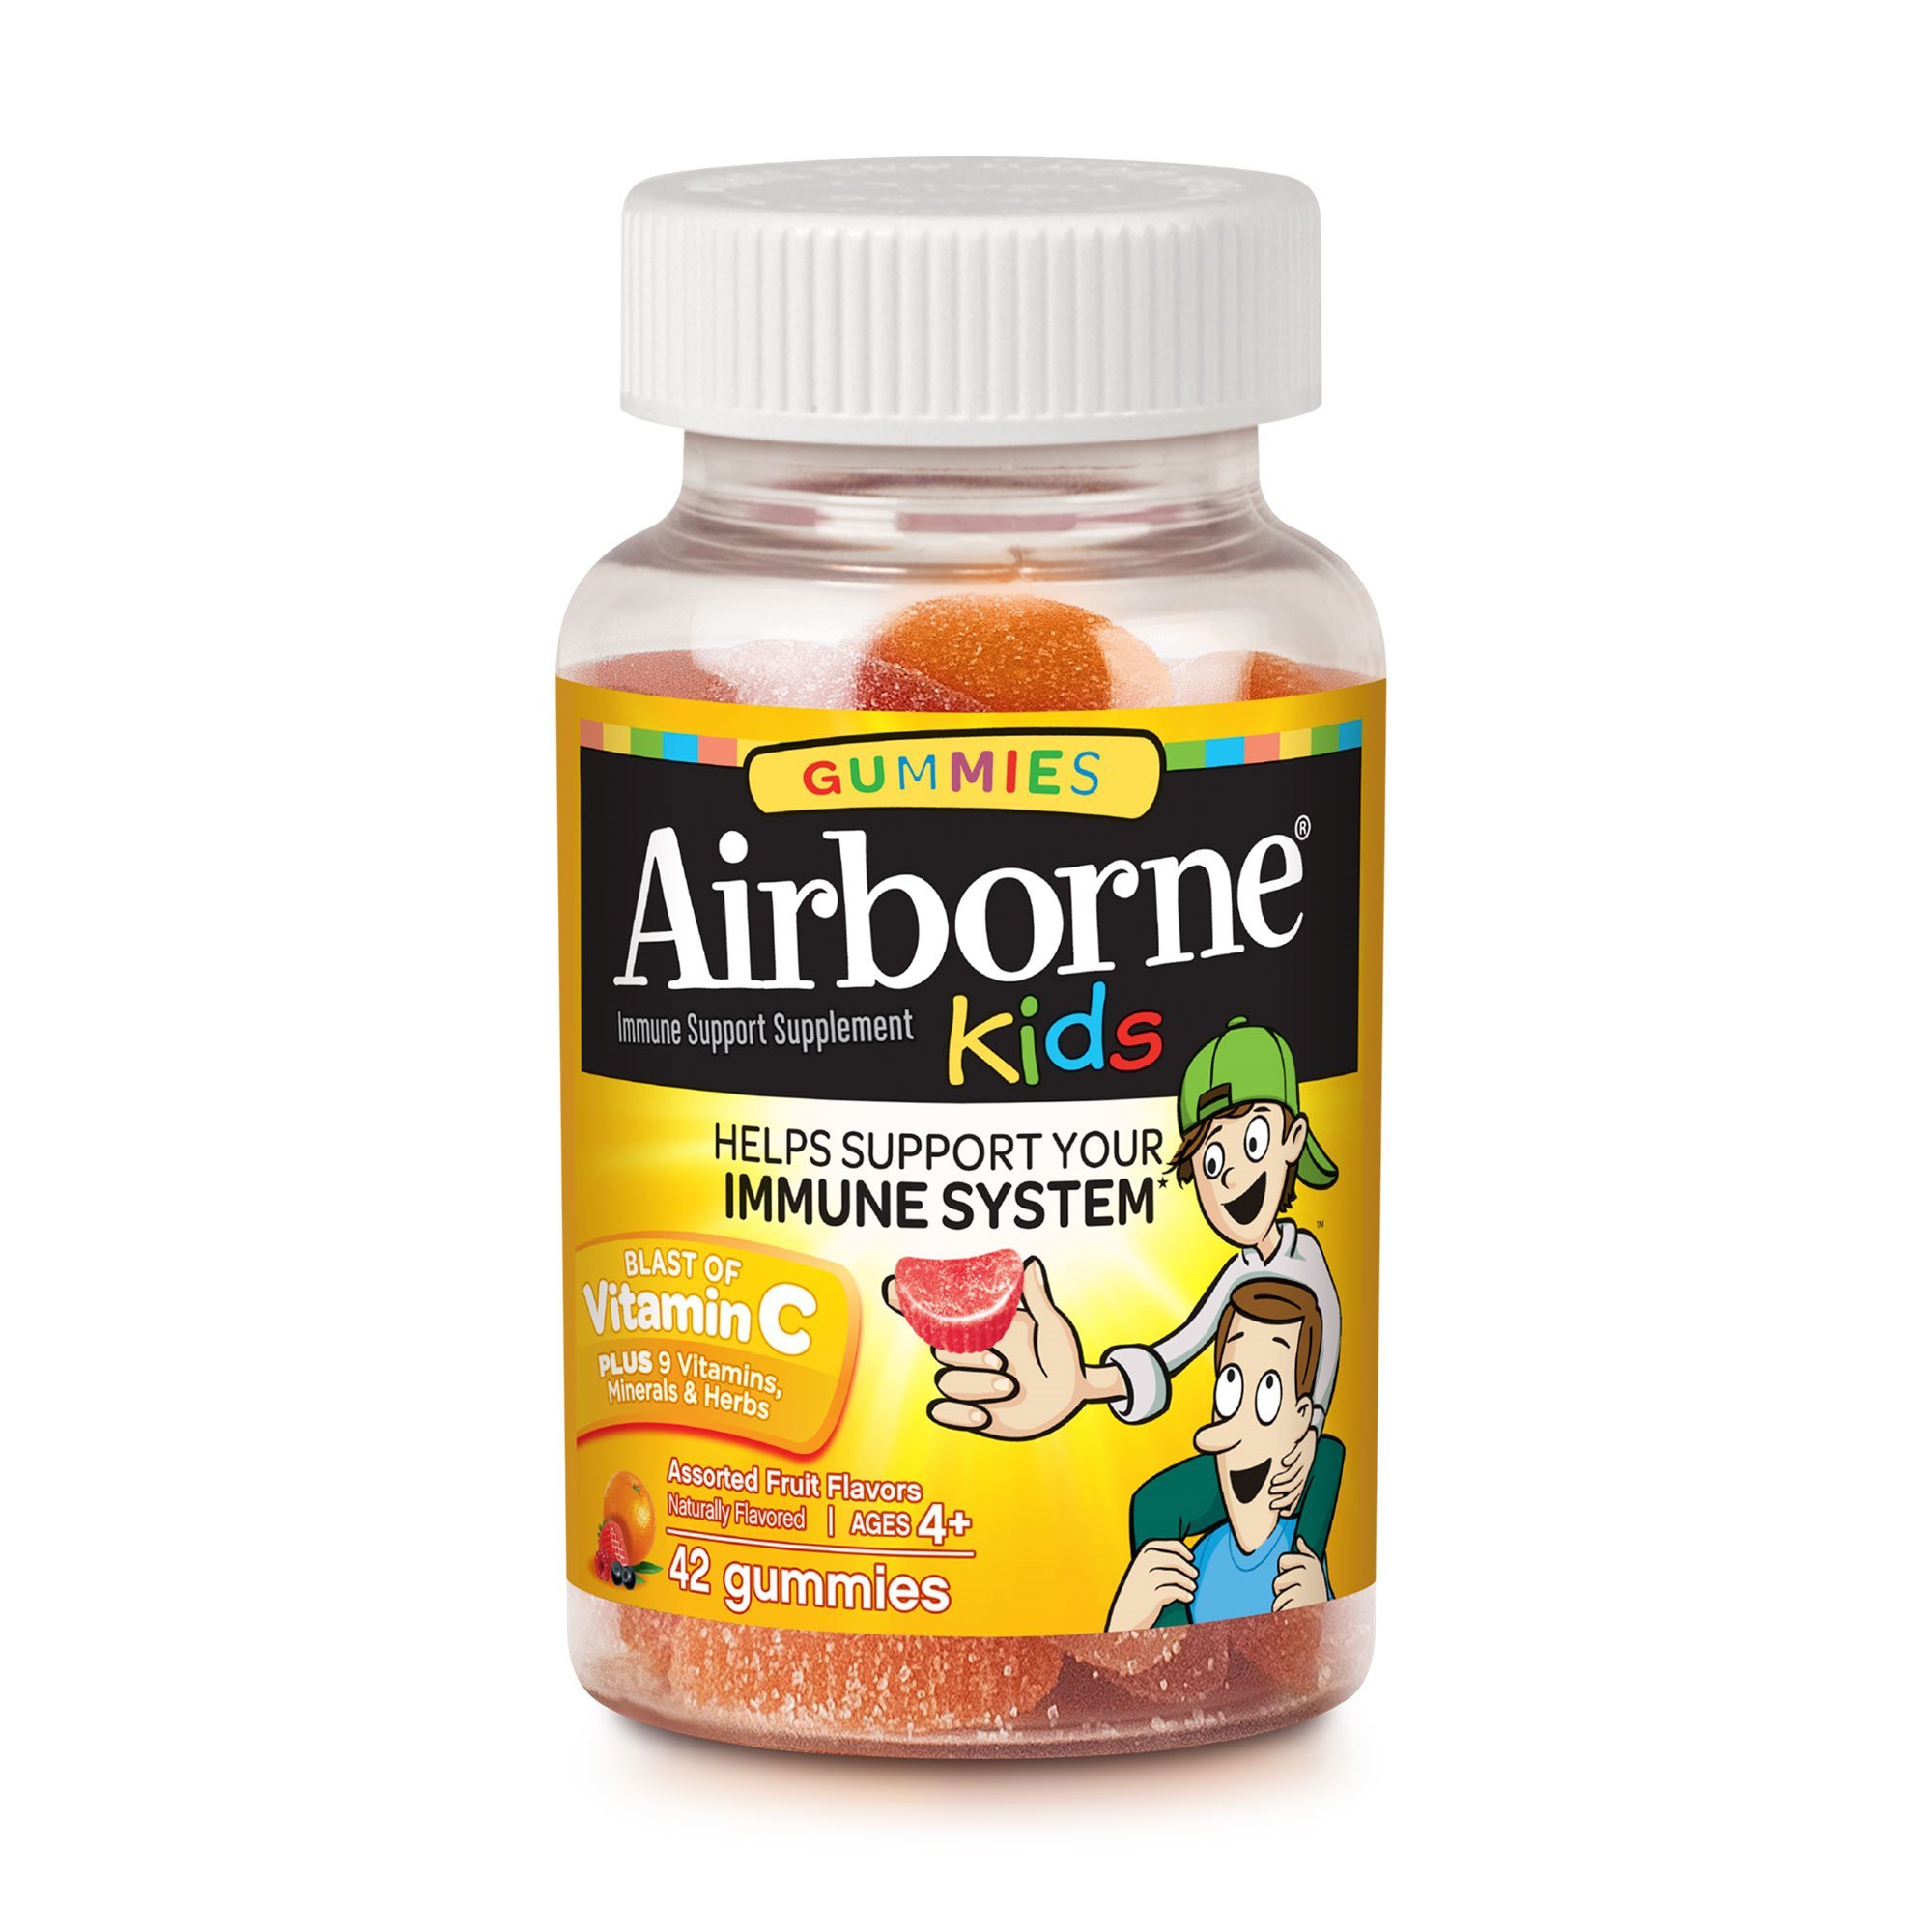 Airborne Kids Assorted Fruit Flavored Gummies, 42 count - 667mg of Vitamin C and Minerals & Herbs Immune Support (Pack of 6)